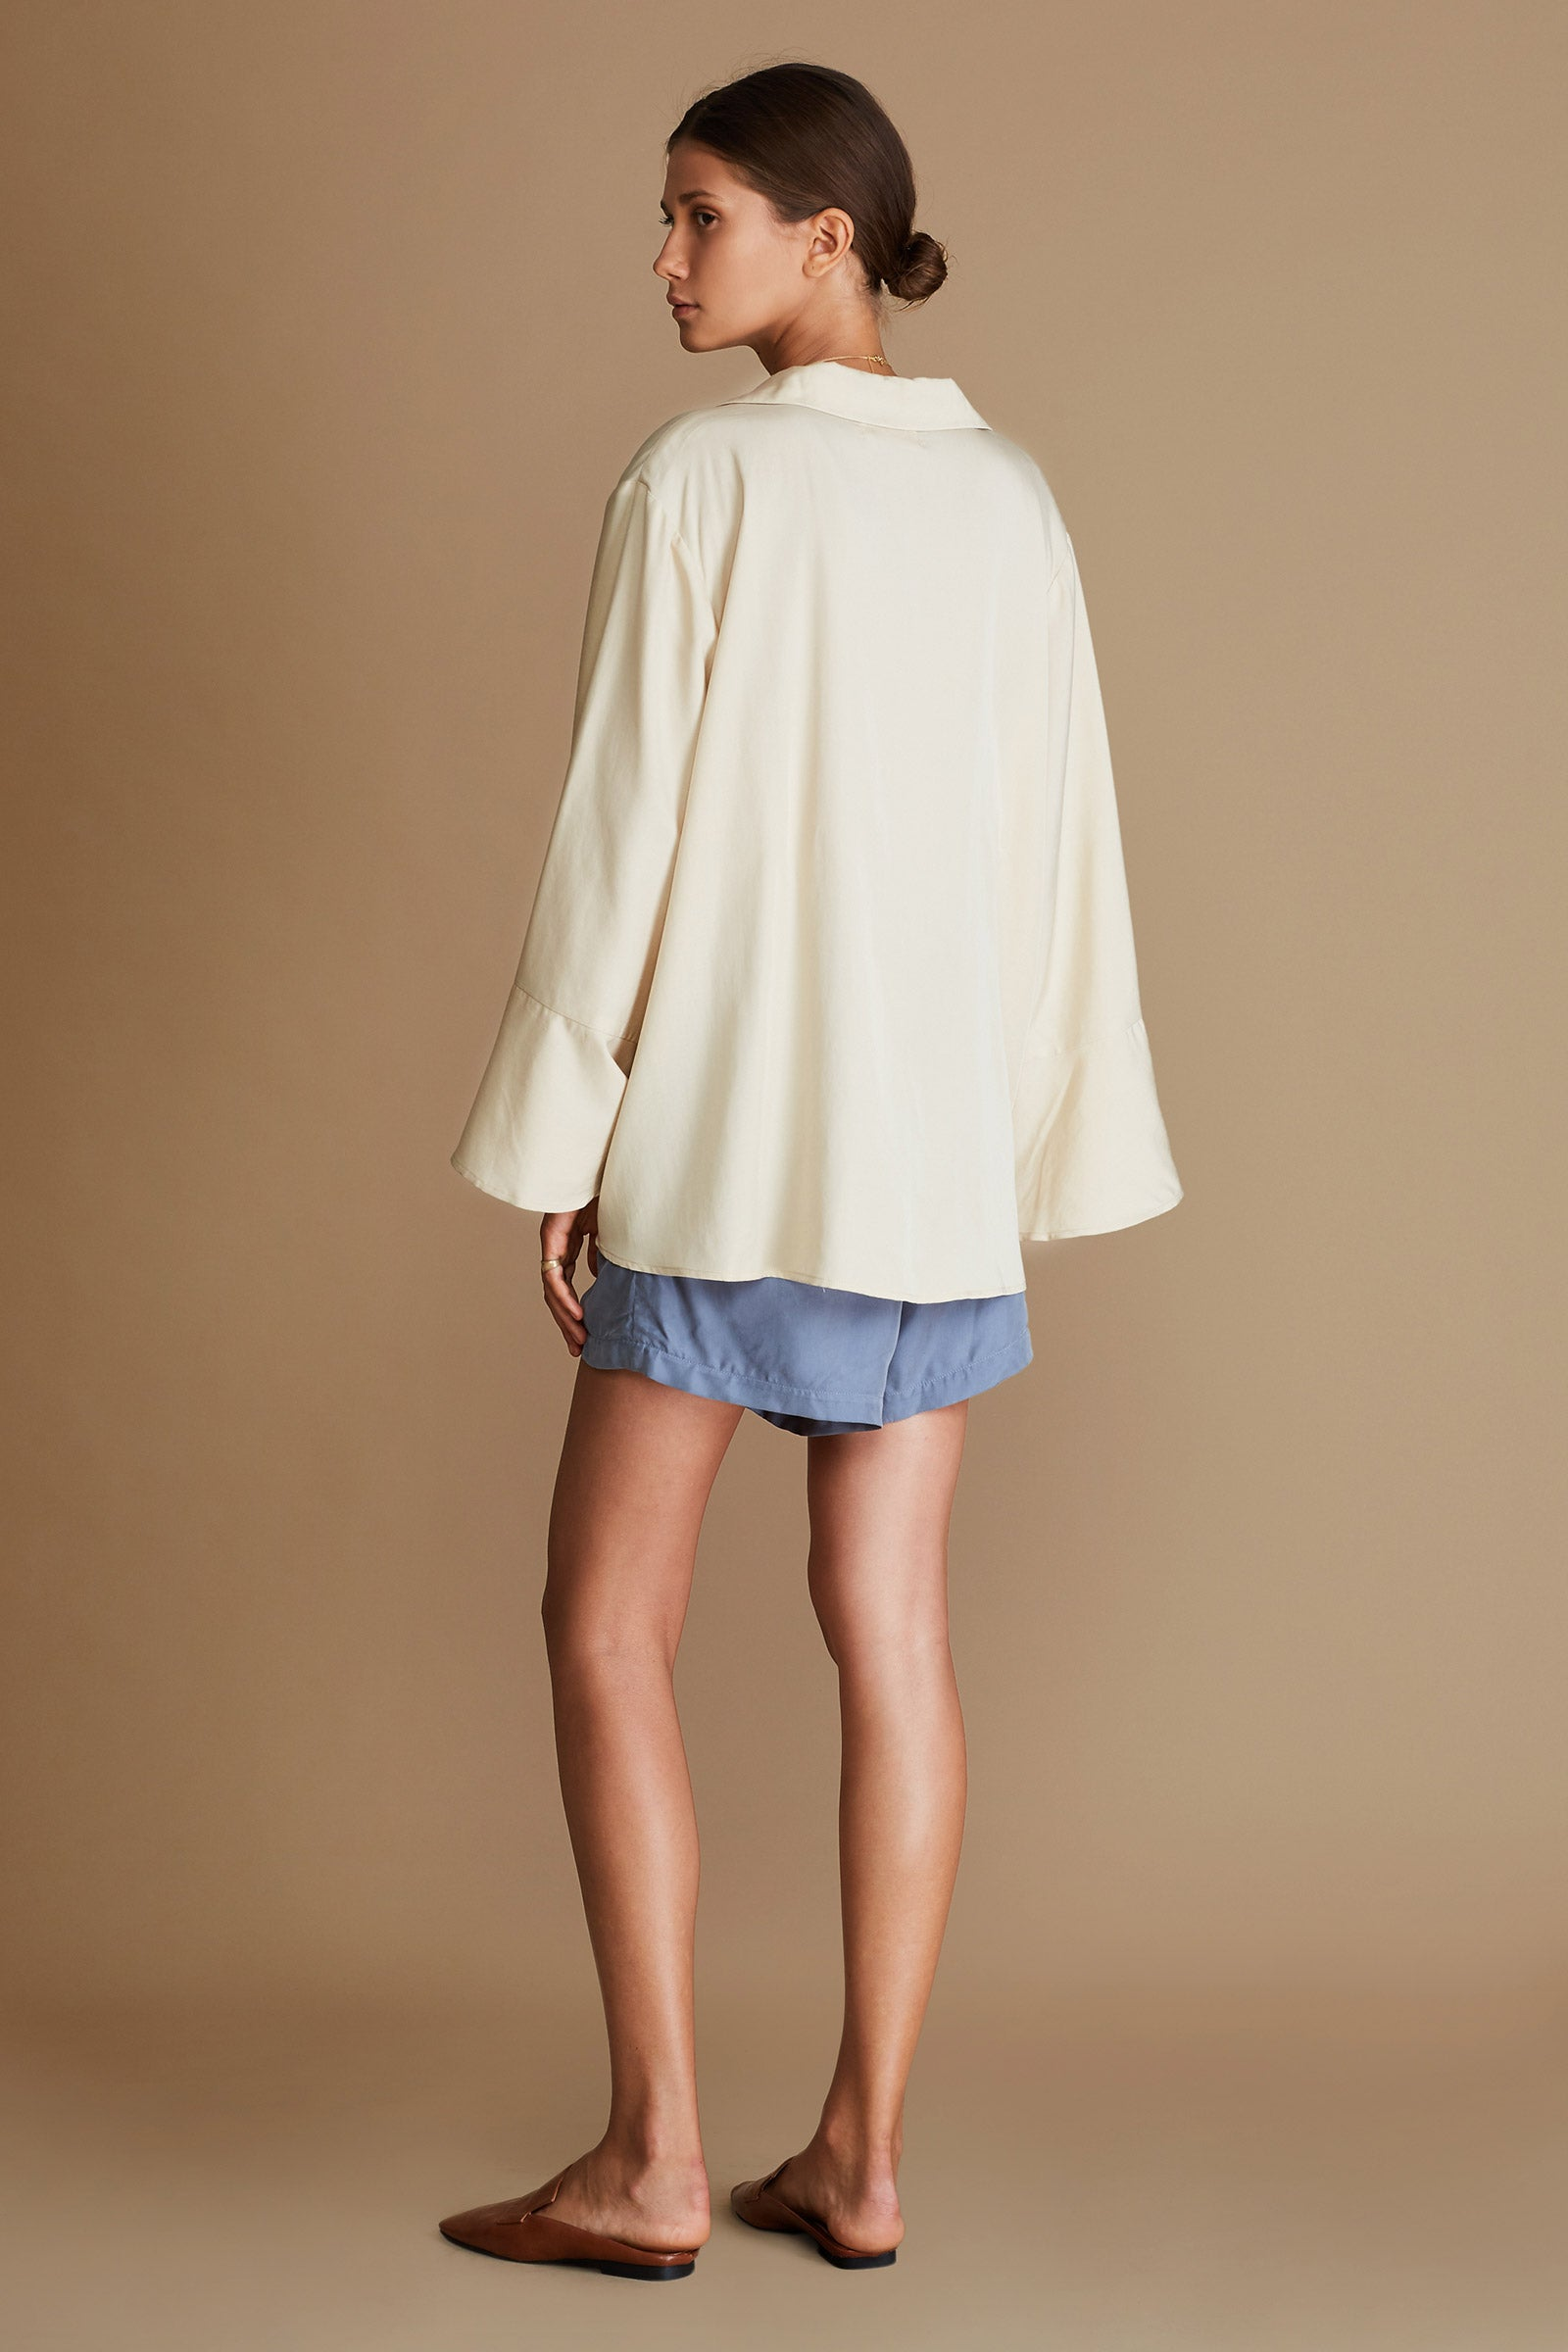 THE LIVIE BOYFRIEND SHIRT